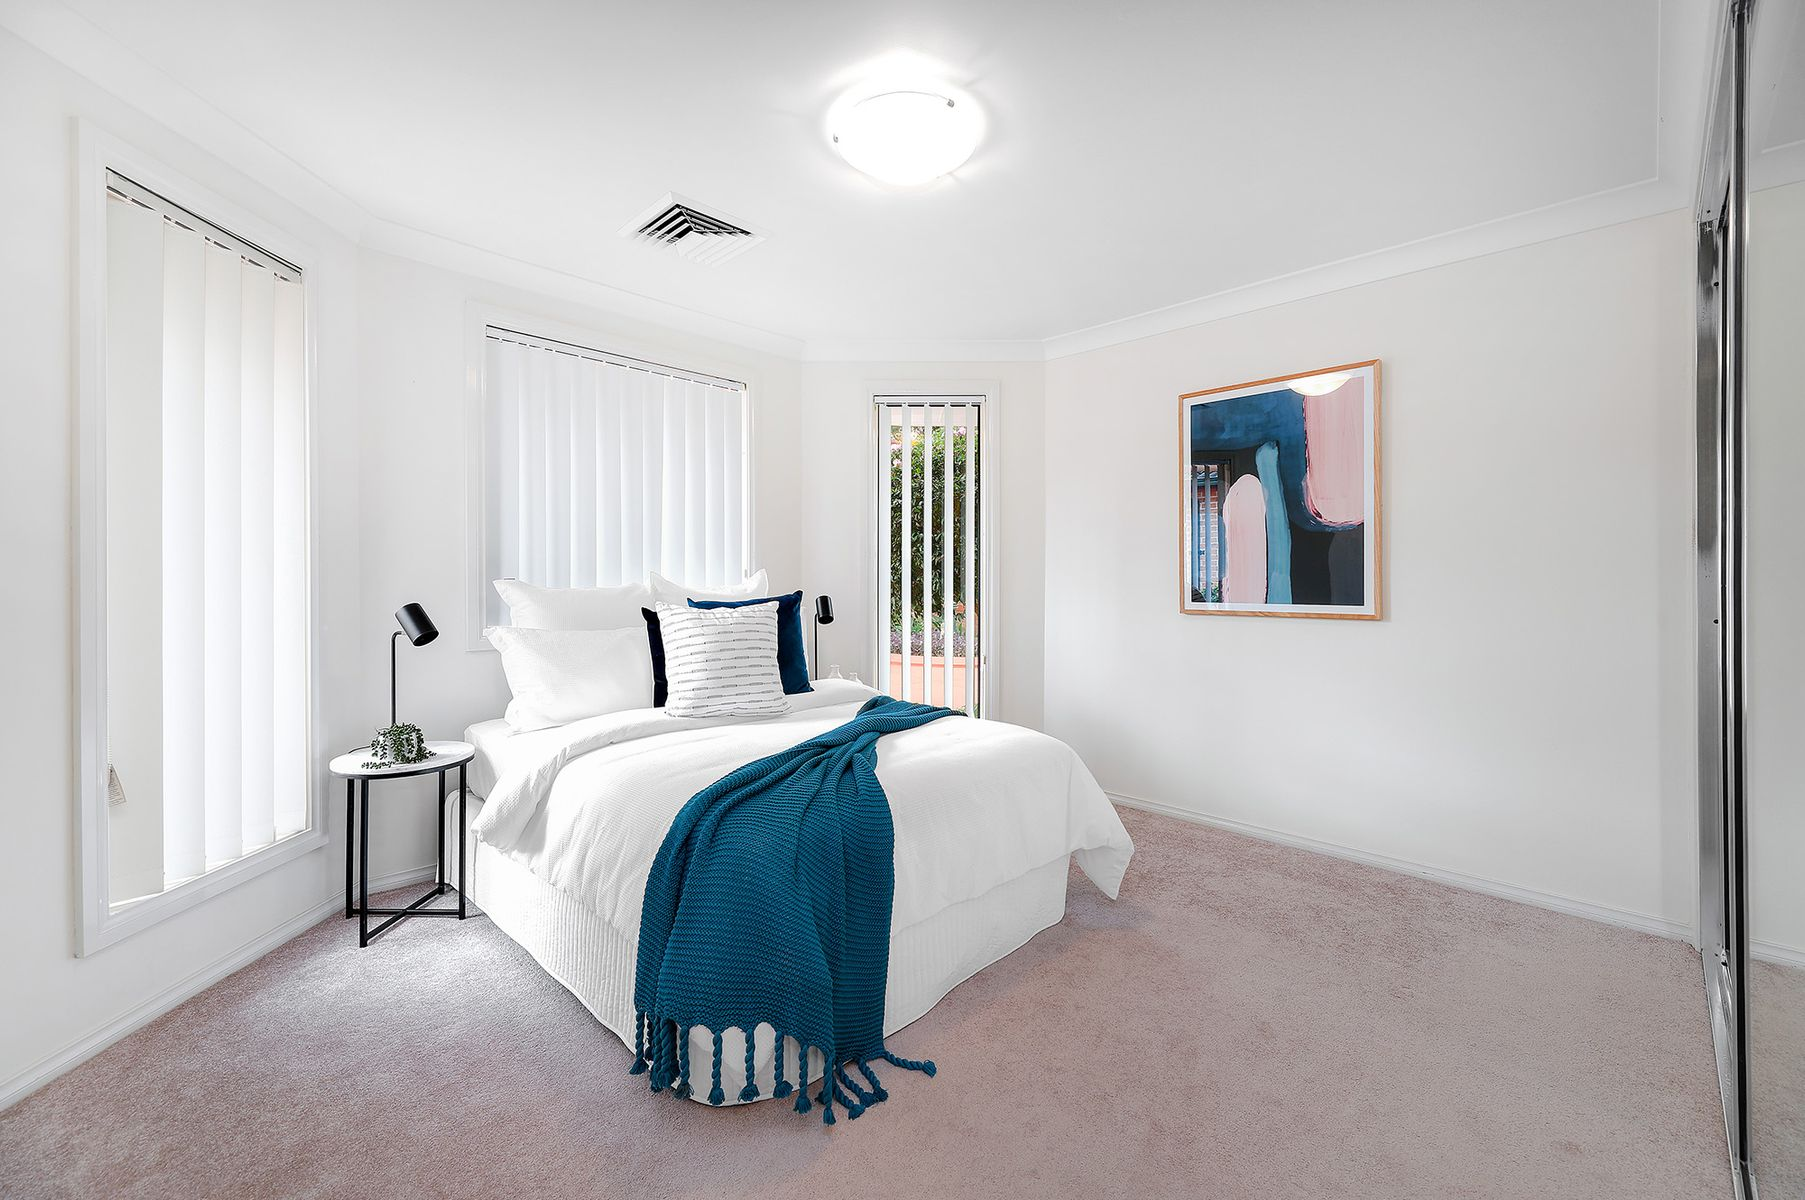 4/13 Kinross Place, Revesby, NSW 2212